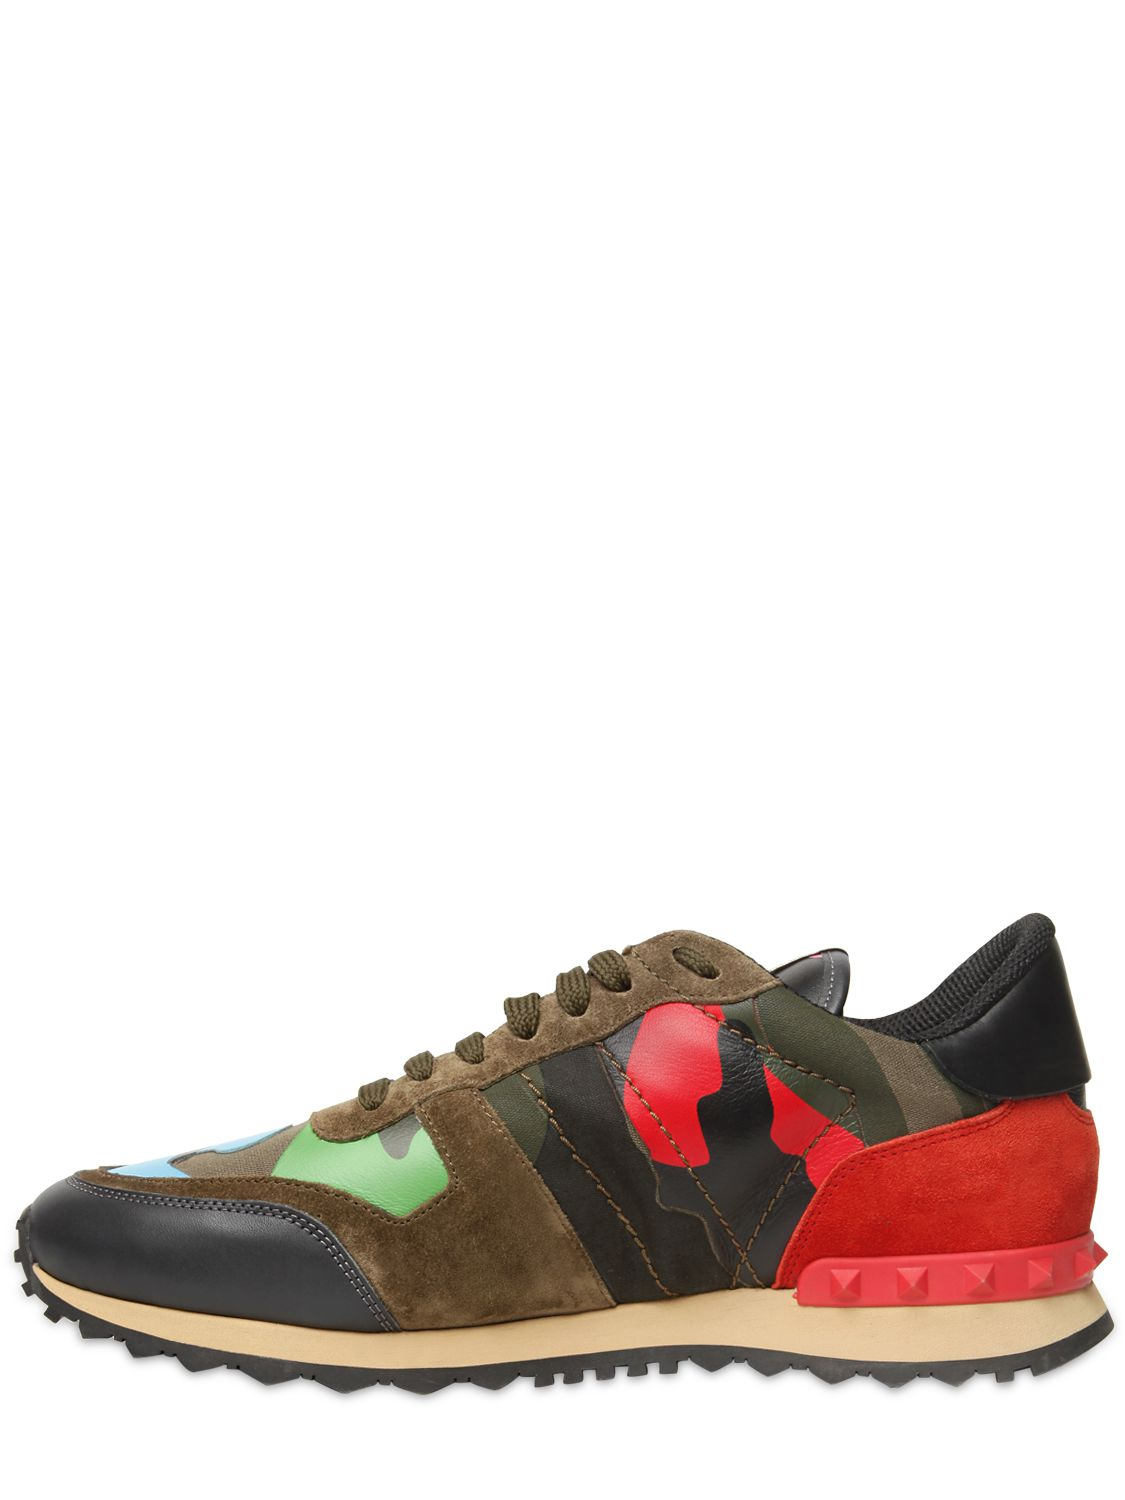 valentino rockstud camo canvas leather sneakers for